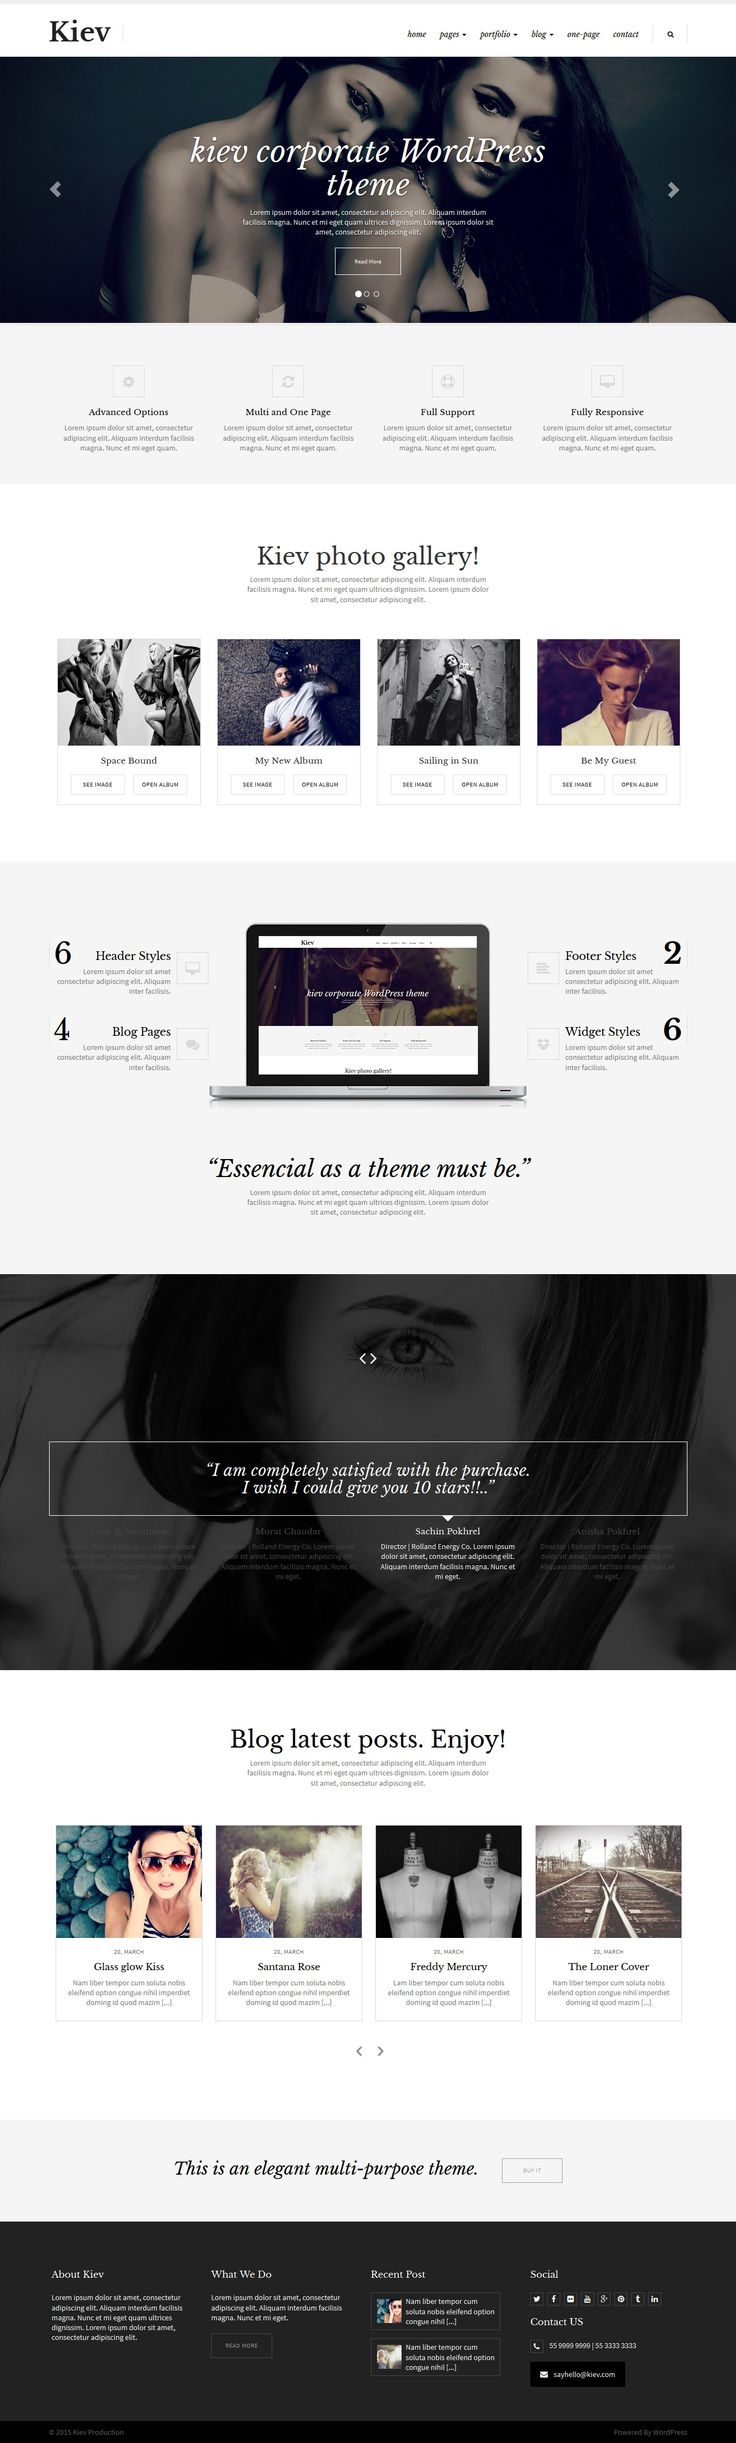 Best website options for photographers